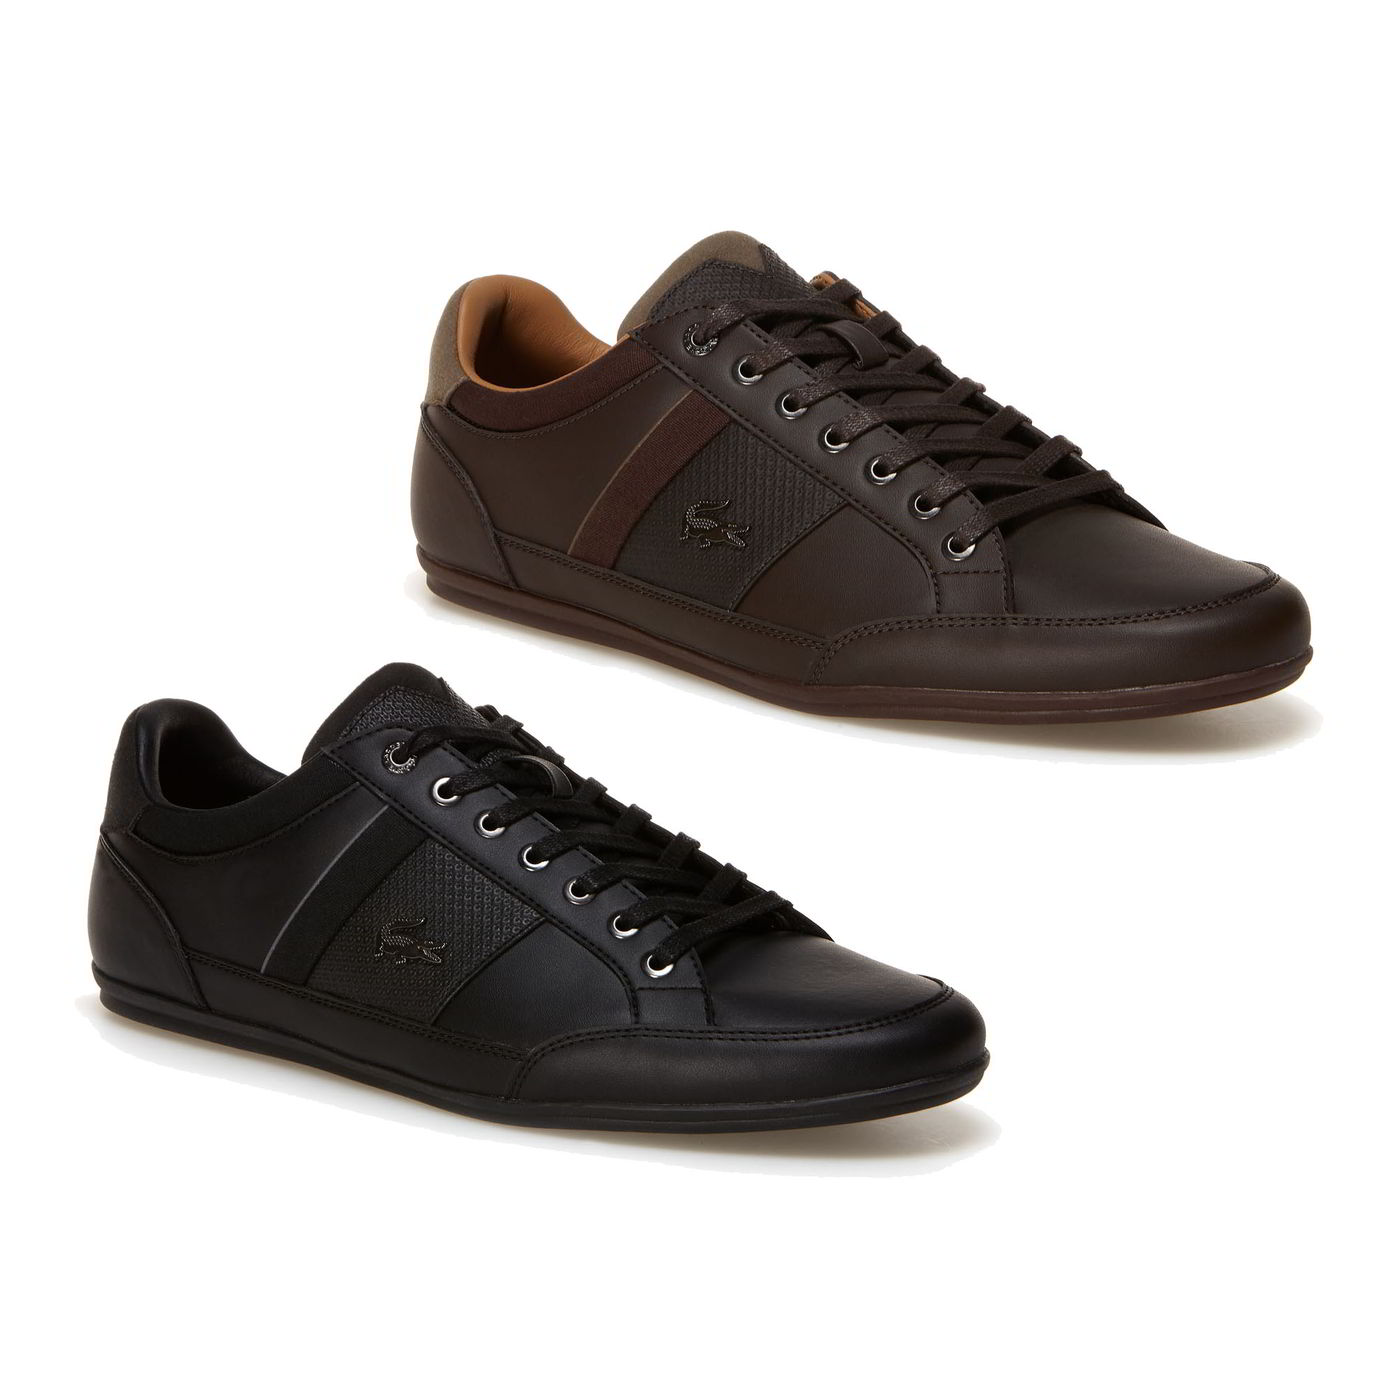 d7b3b711076f Lacoste Chaymon 118 1 Mens Black Brown Leather Trainers Shoes Size ...